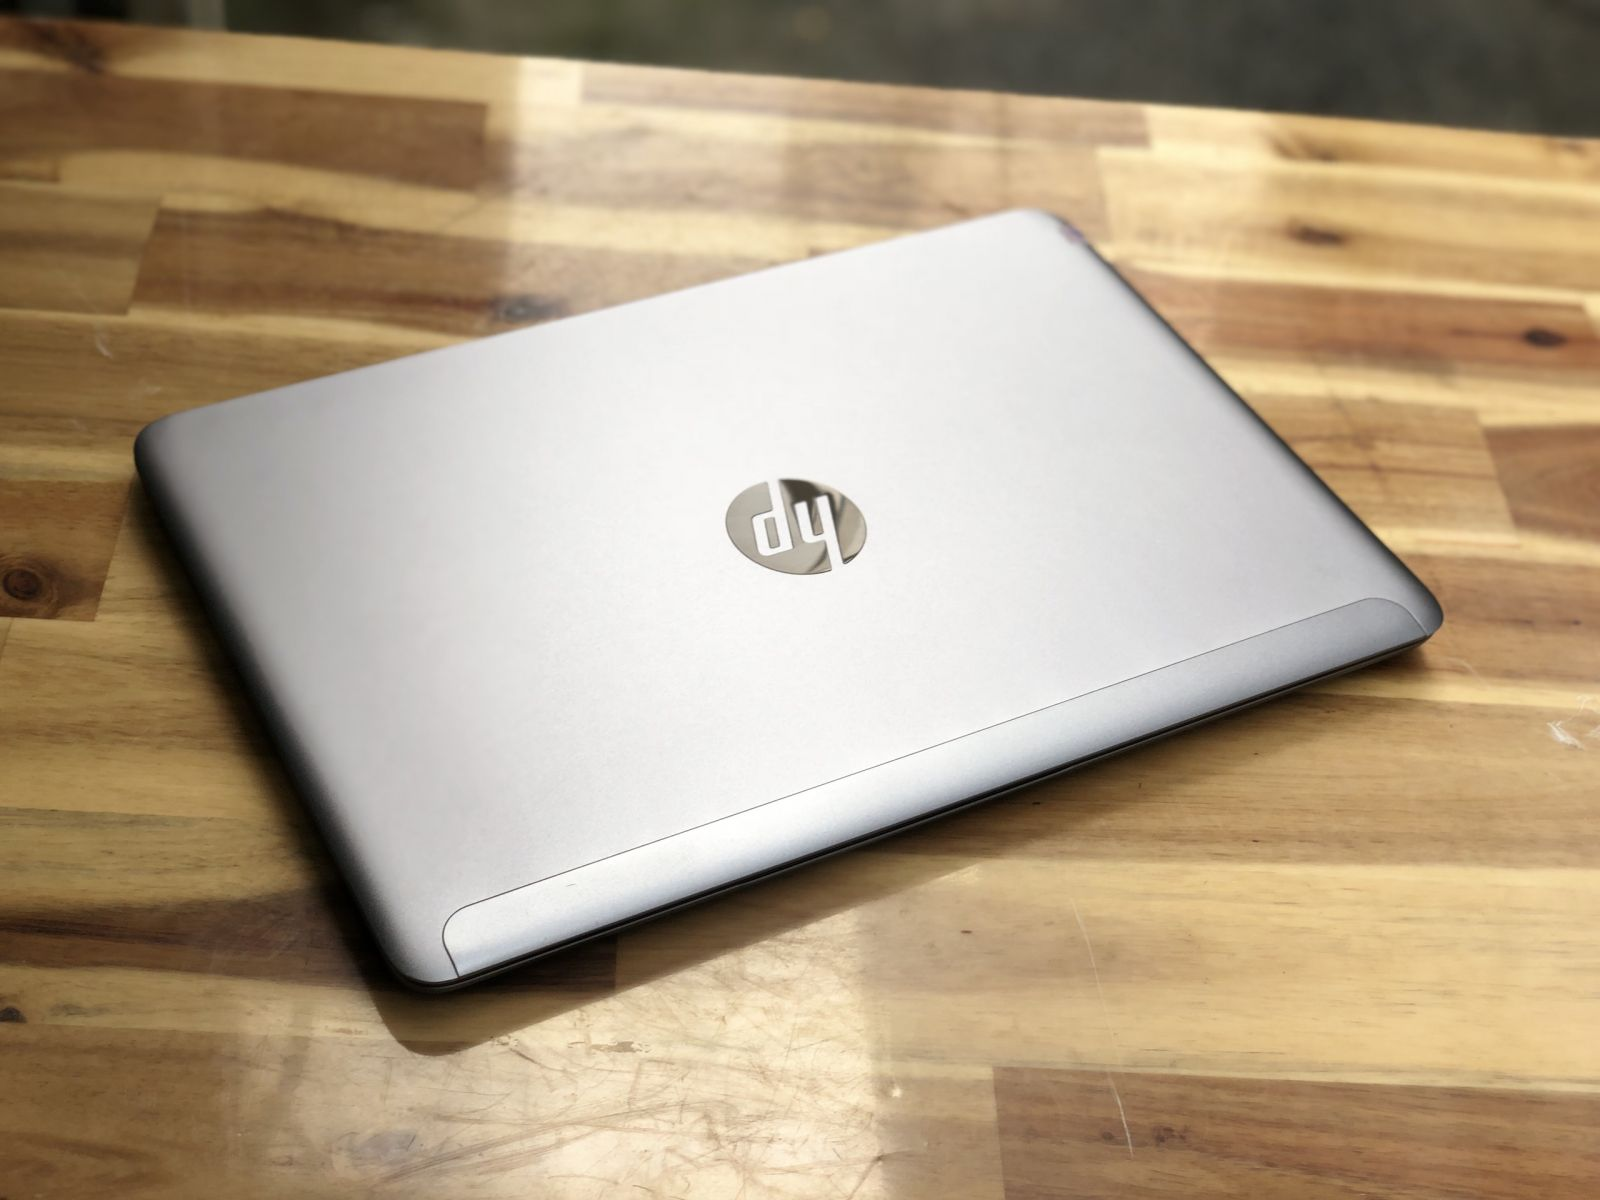 Hp Elitebook Folio 1040 G1 Ultrabook i7 4600U | RAM 8GB | SSD 256GB | 14 Inches Full HD | Card on